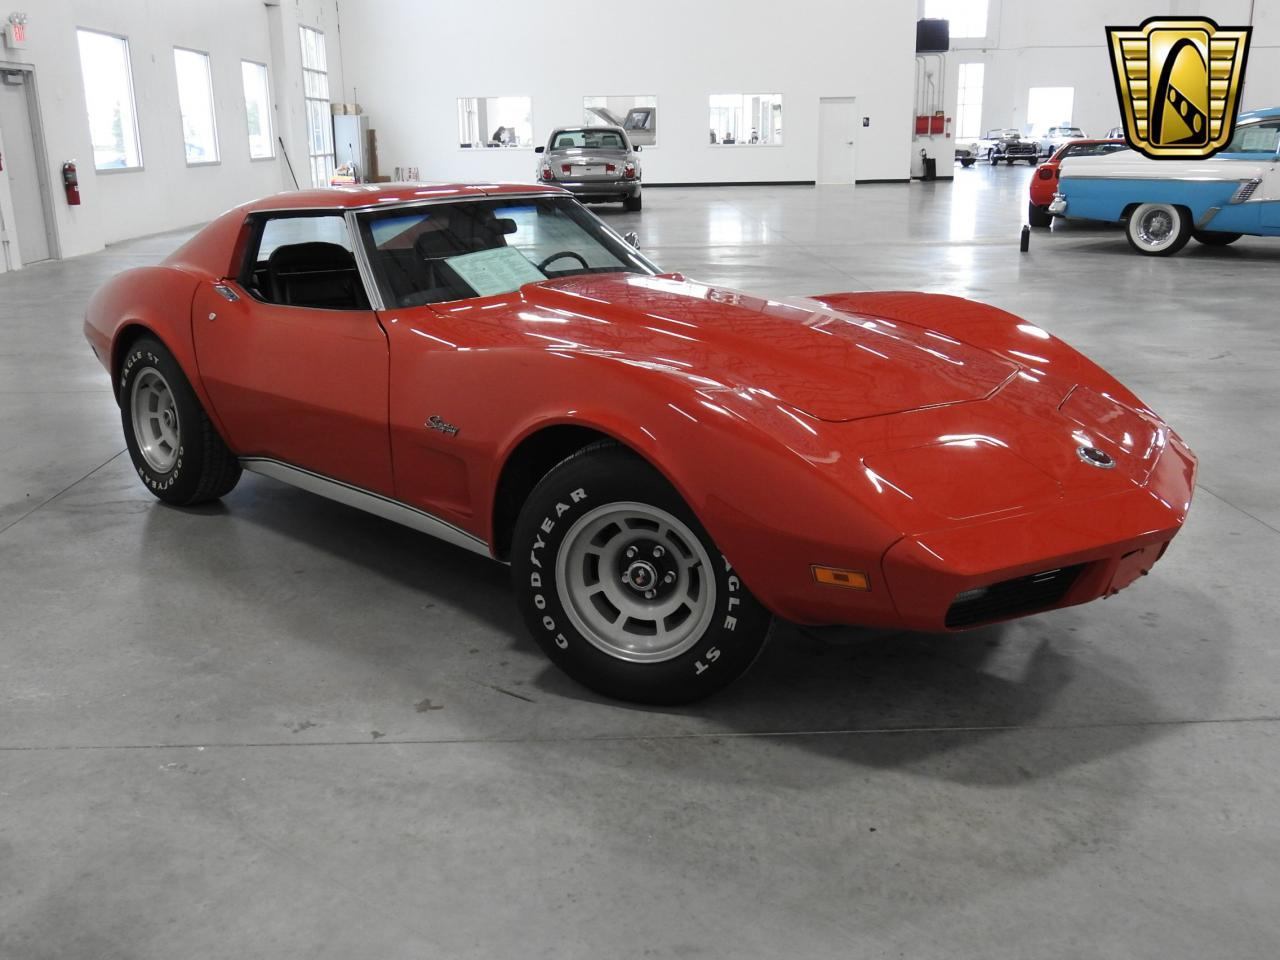 Large Picture of 1974 Corvette located in Kenosha Wisconsin - $17,995.00 Offered by Gateway Classic Cars - Milwaukee - L7ZH